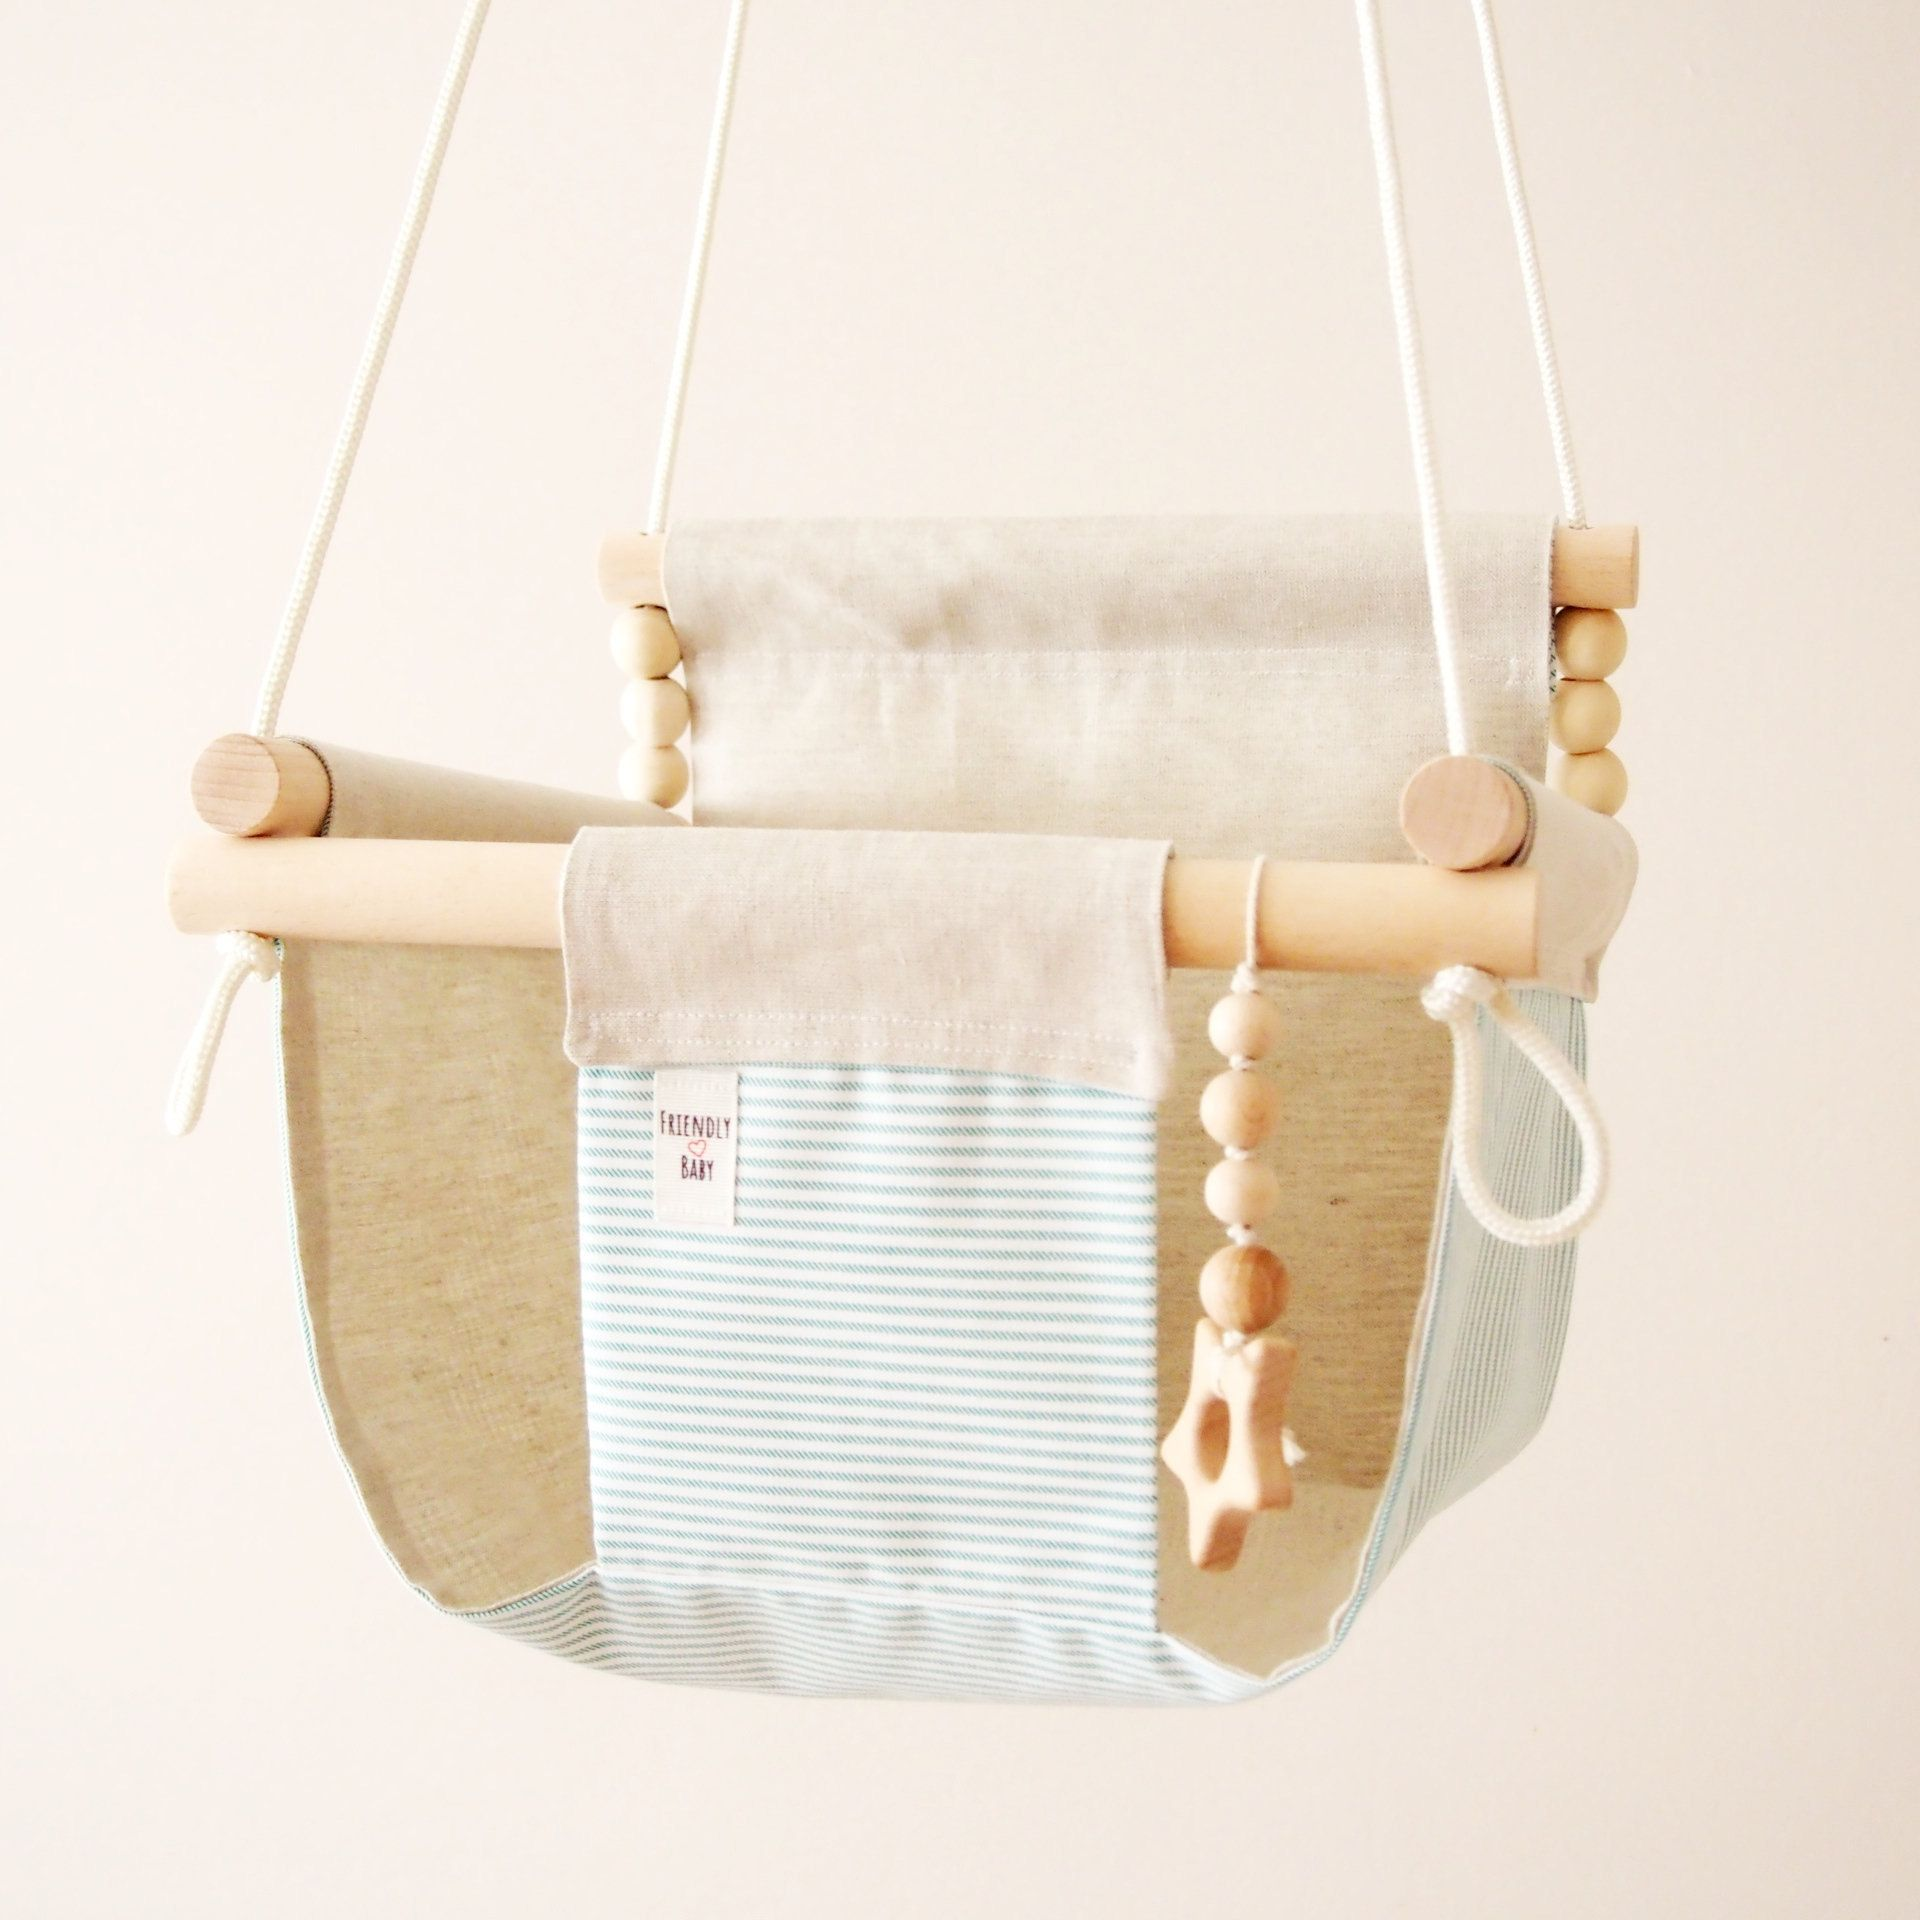 Pin on SWINGS FOR BABY TODDLER